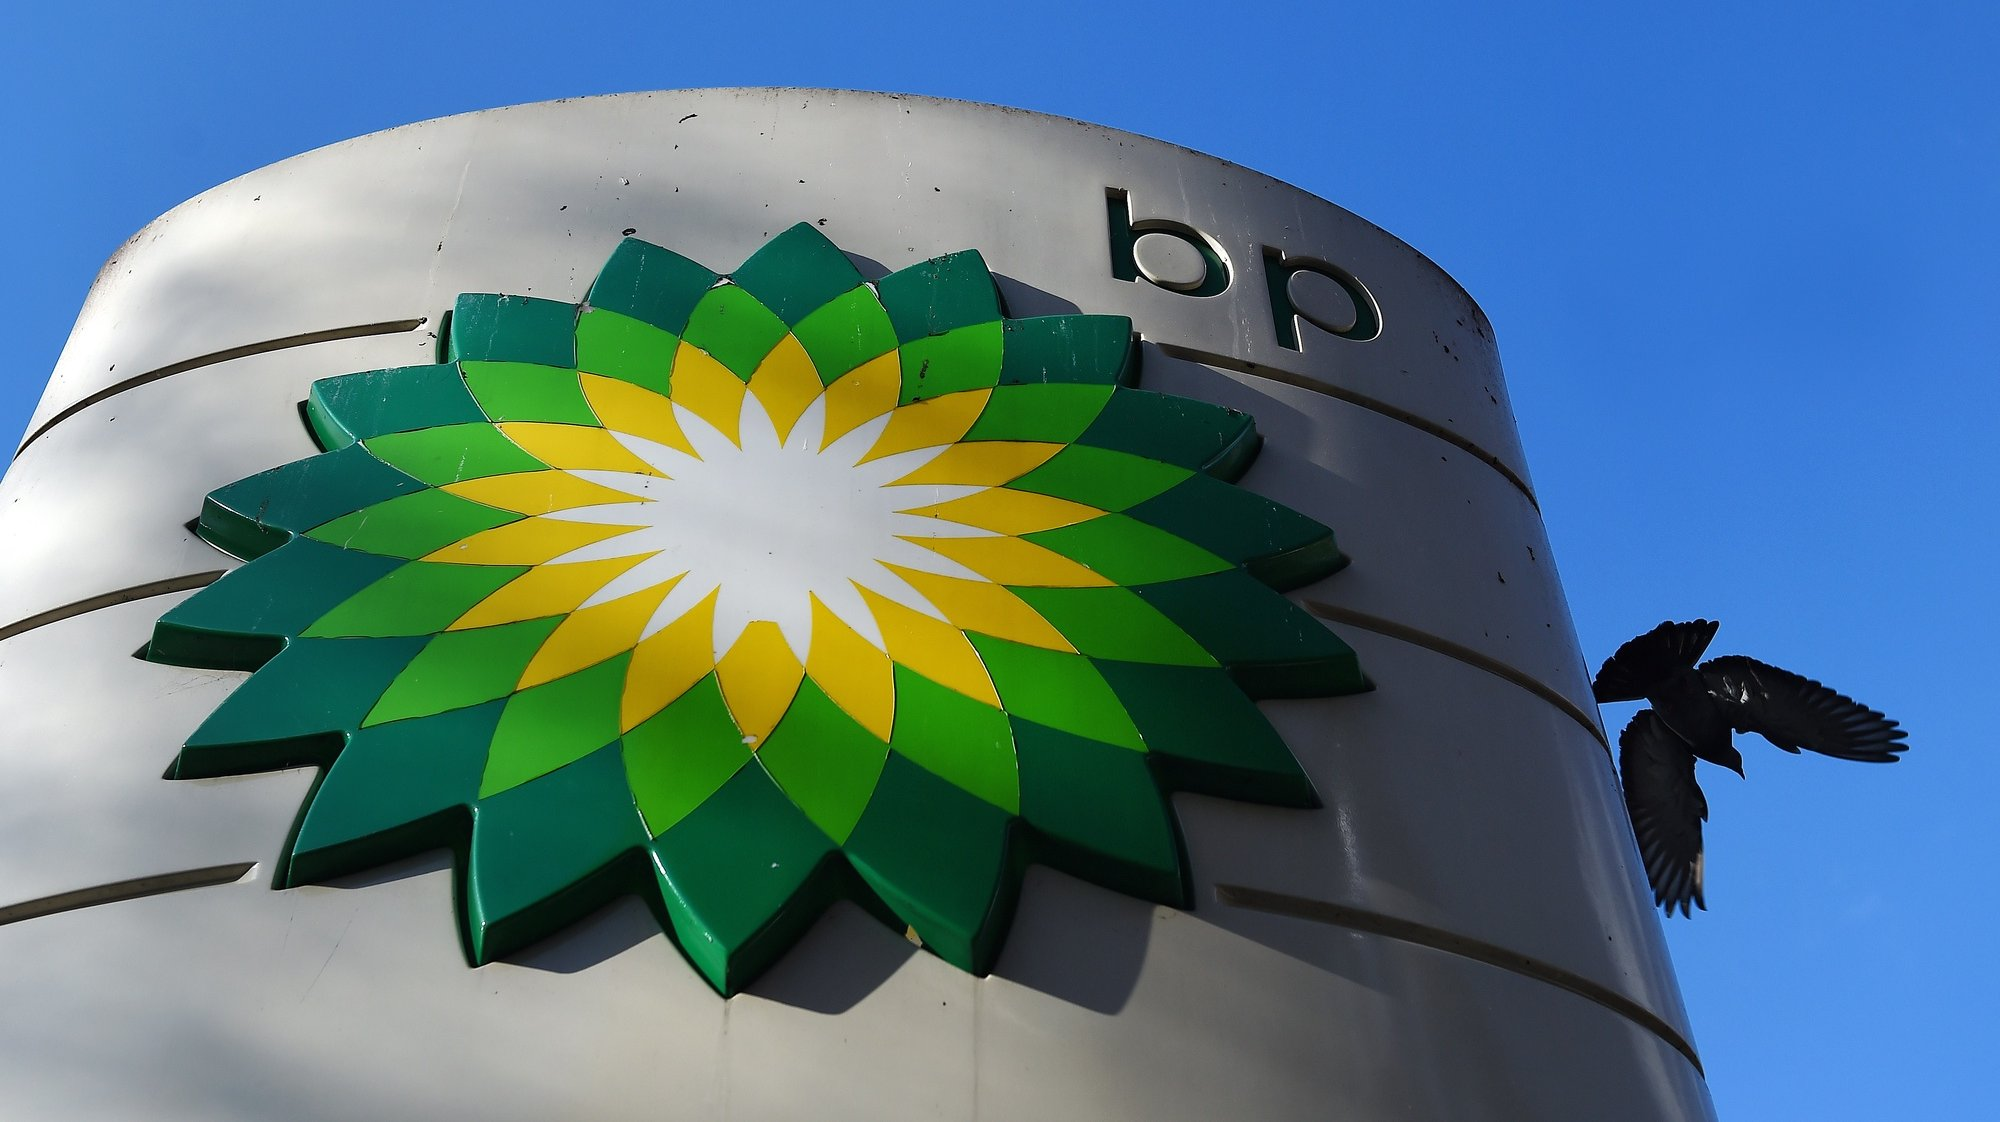 epa08980097 (FILE) - BP's logo at a petrol station in London, Britain, 02 February 2016 (reissued 01 February 2021). BP is to release its 4th quarter 2020 results and dividend announcement on 02 February 2021.  EPA/ANDY RAIN *** Local Caption *** 52566533